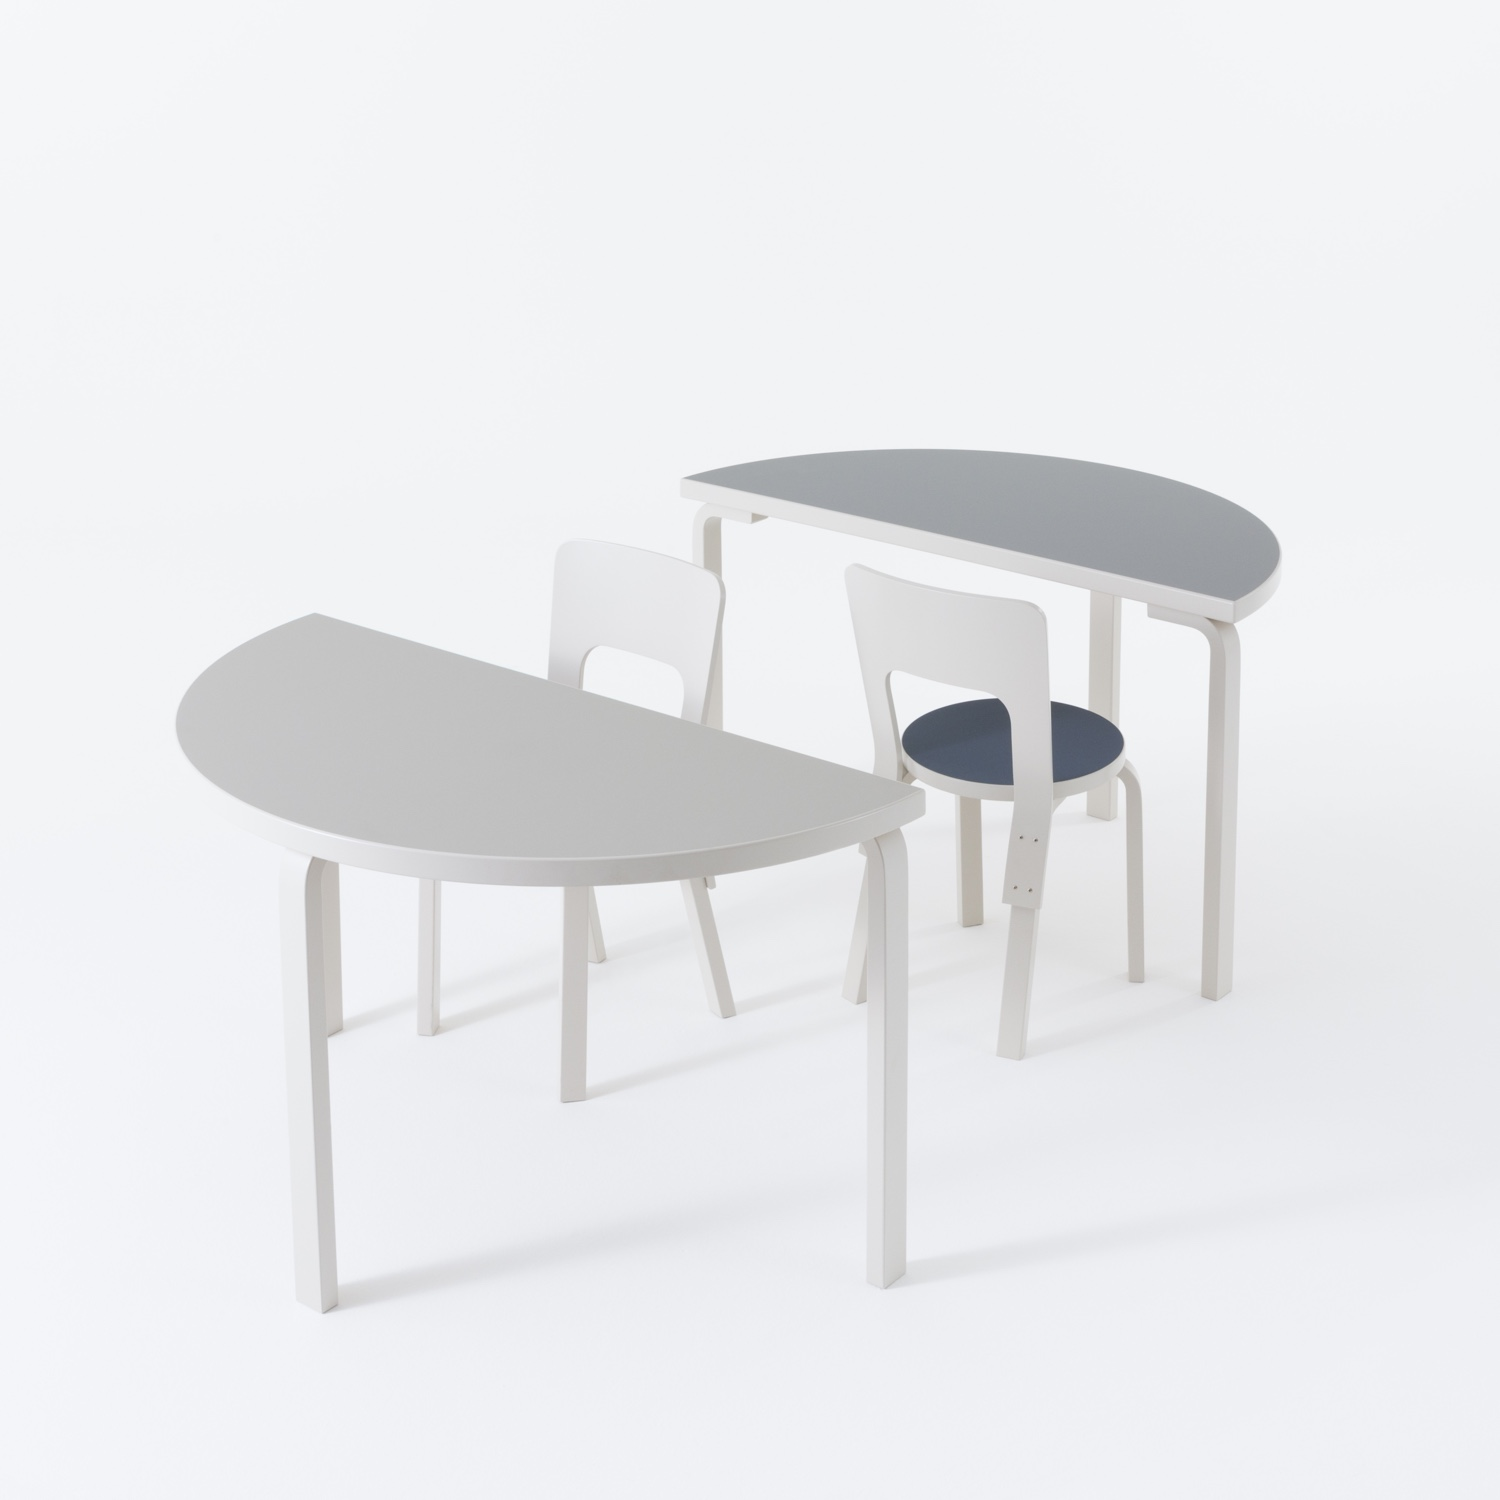 Table-95-and-Chair-66